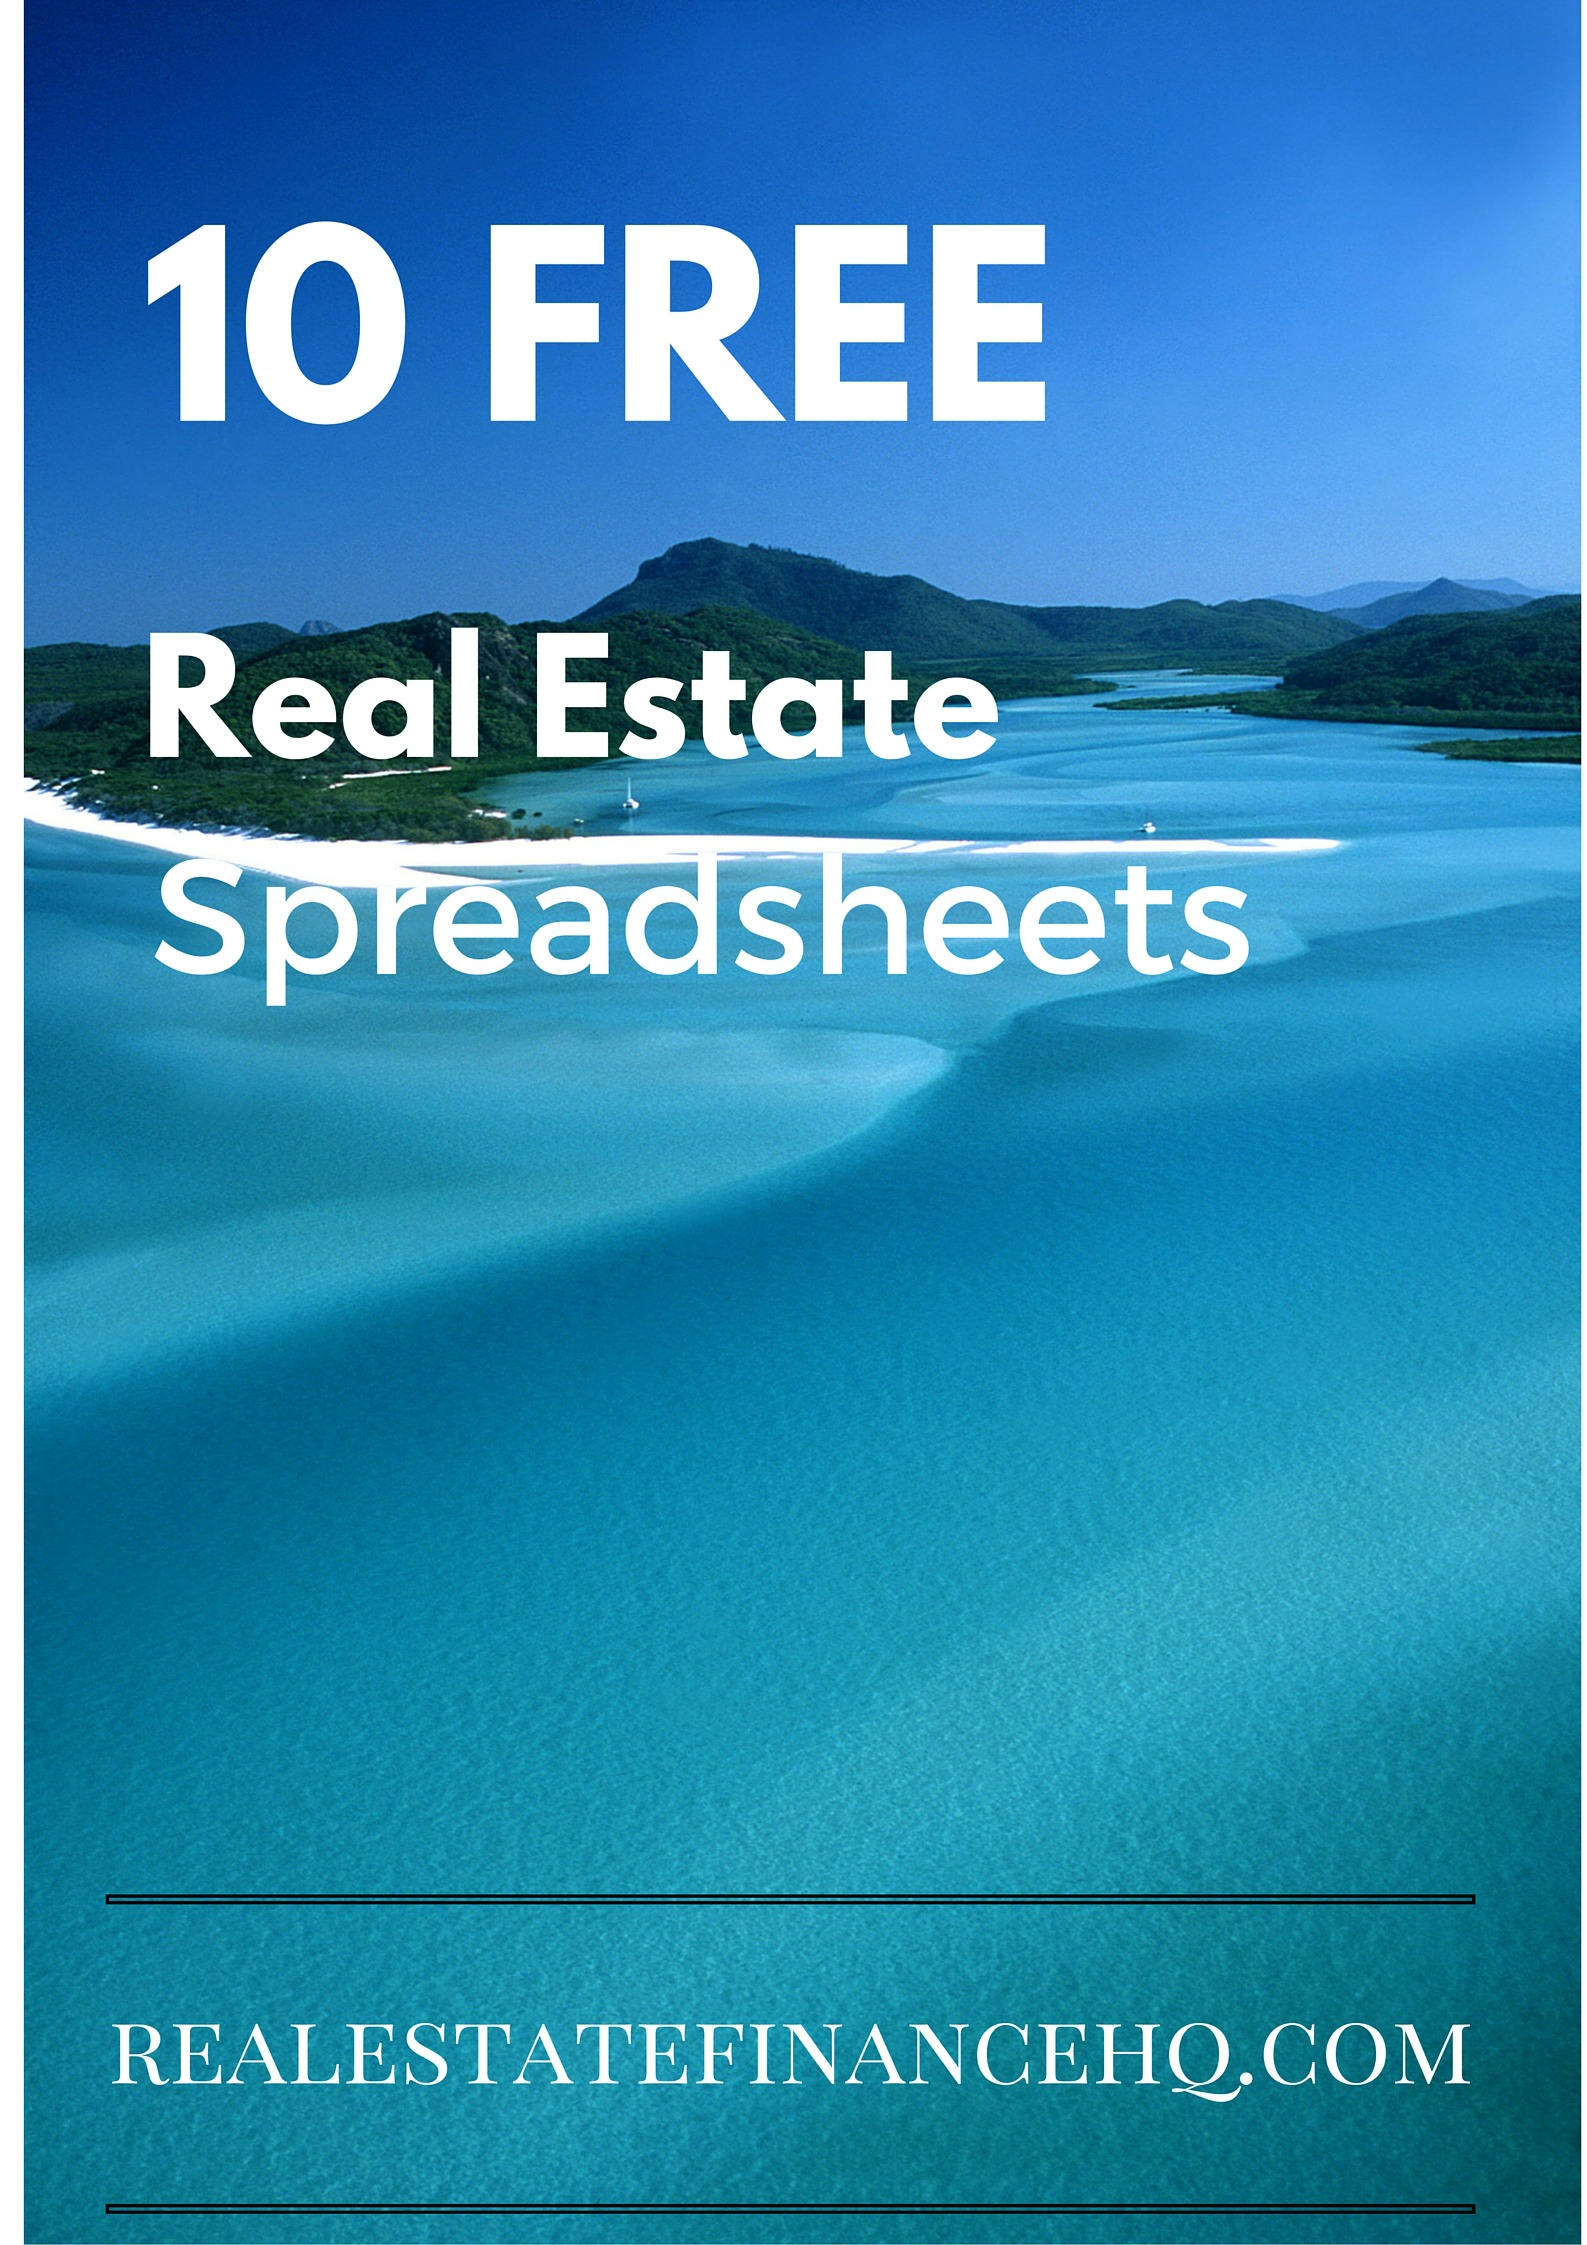 10 Free Real Estate Spreadsheets